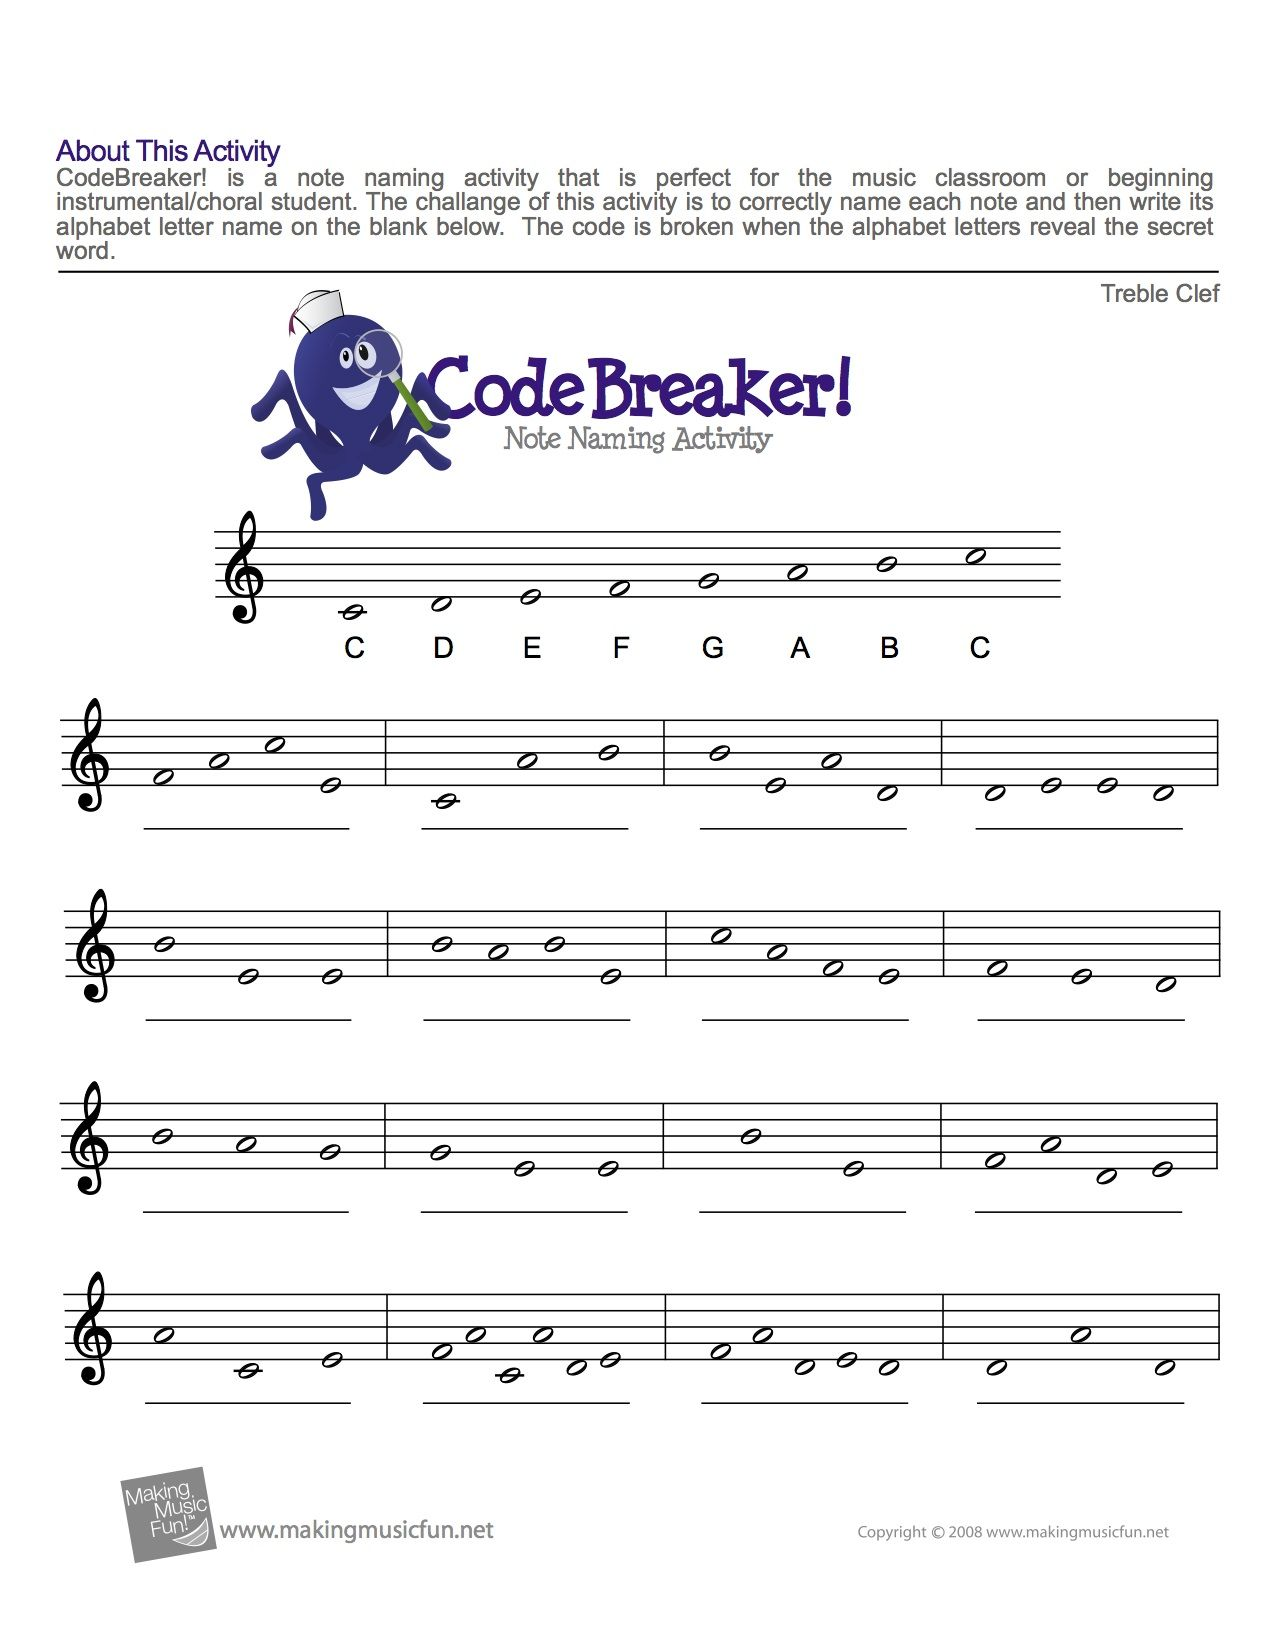 Bass Clef Notation Worksheet